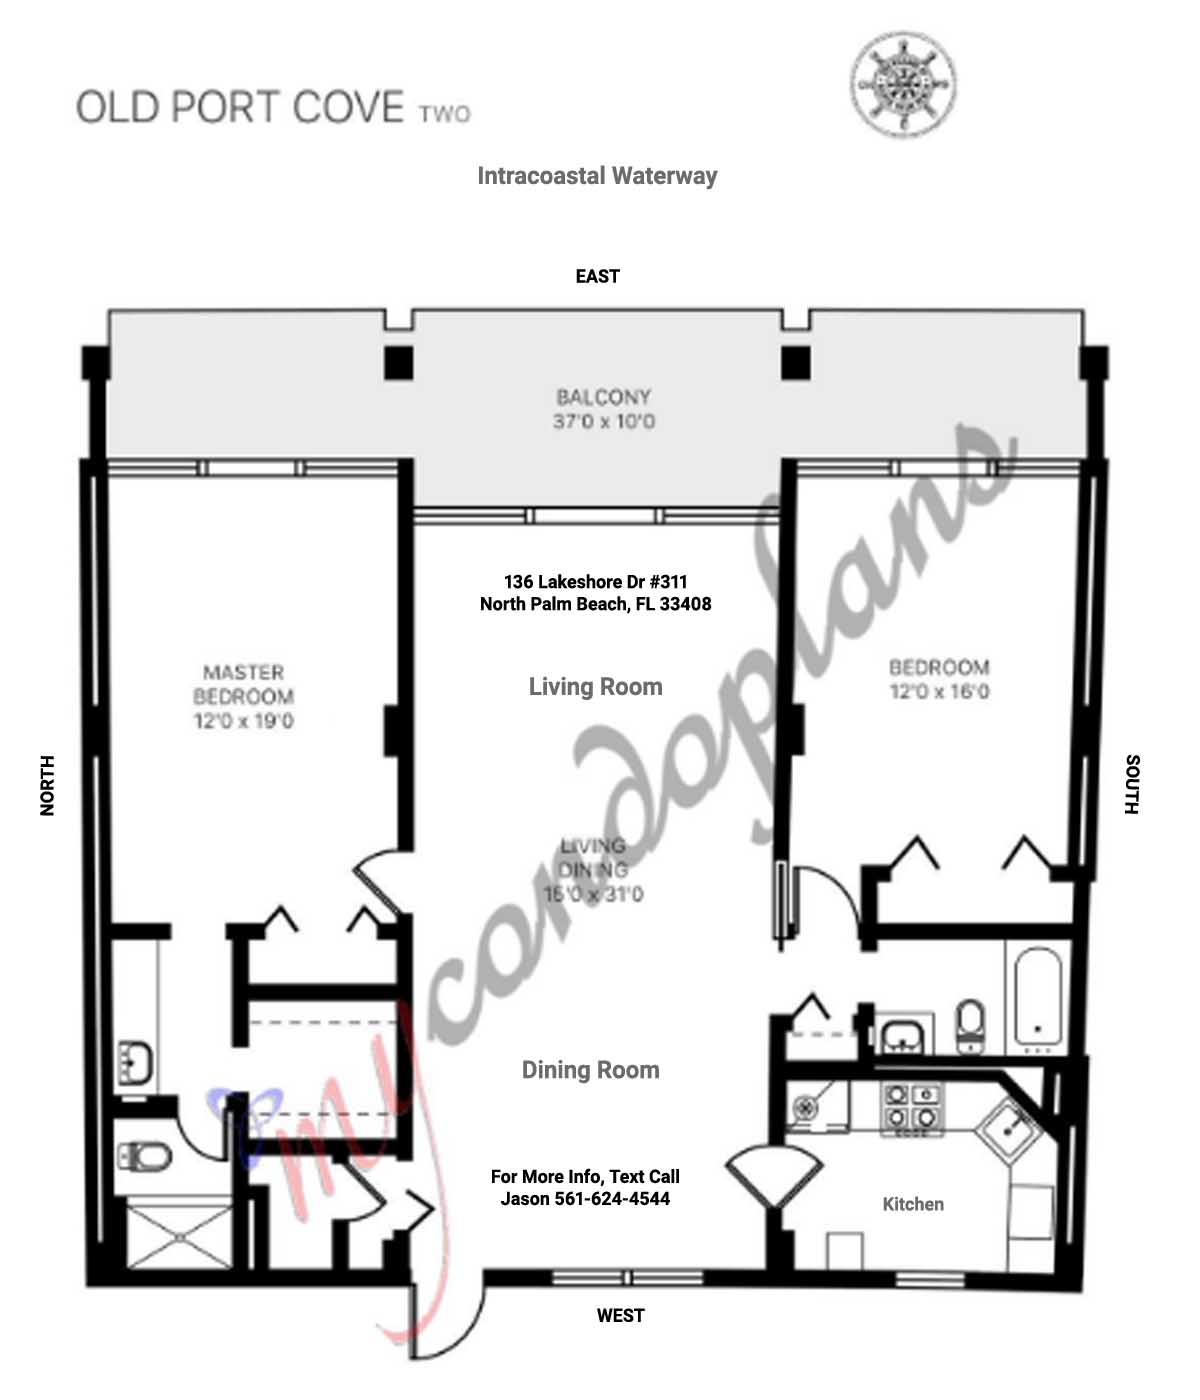 Old Port Cove 136 Lakeshore Dr Floor Plan FLPalmBeach Martin Group Real Estate